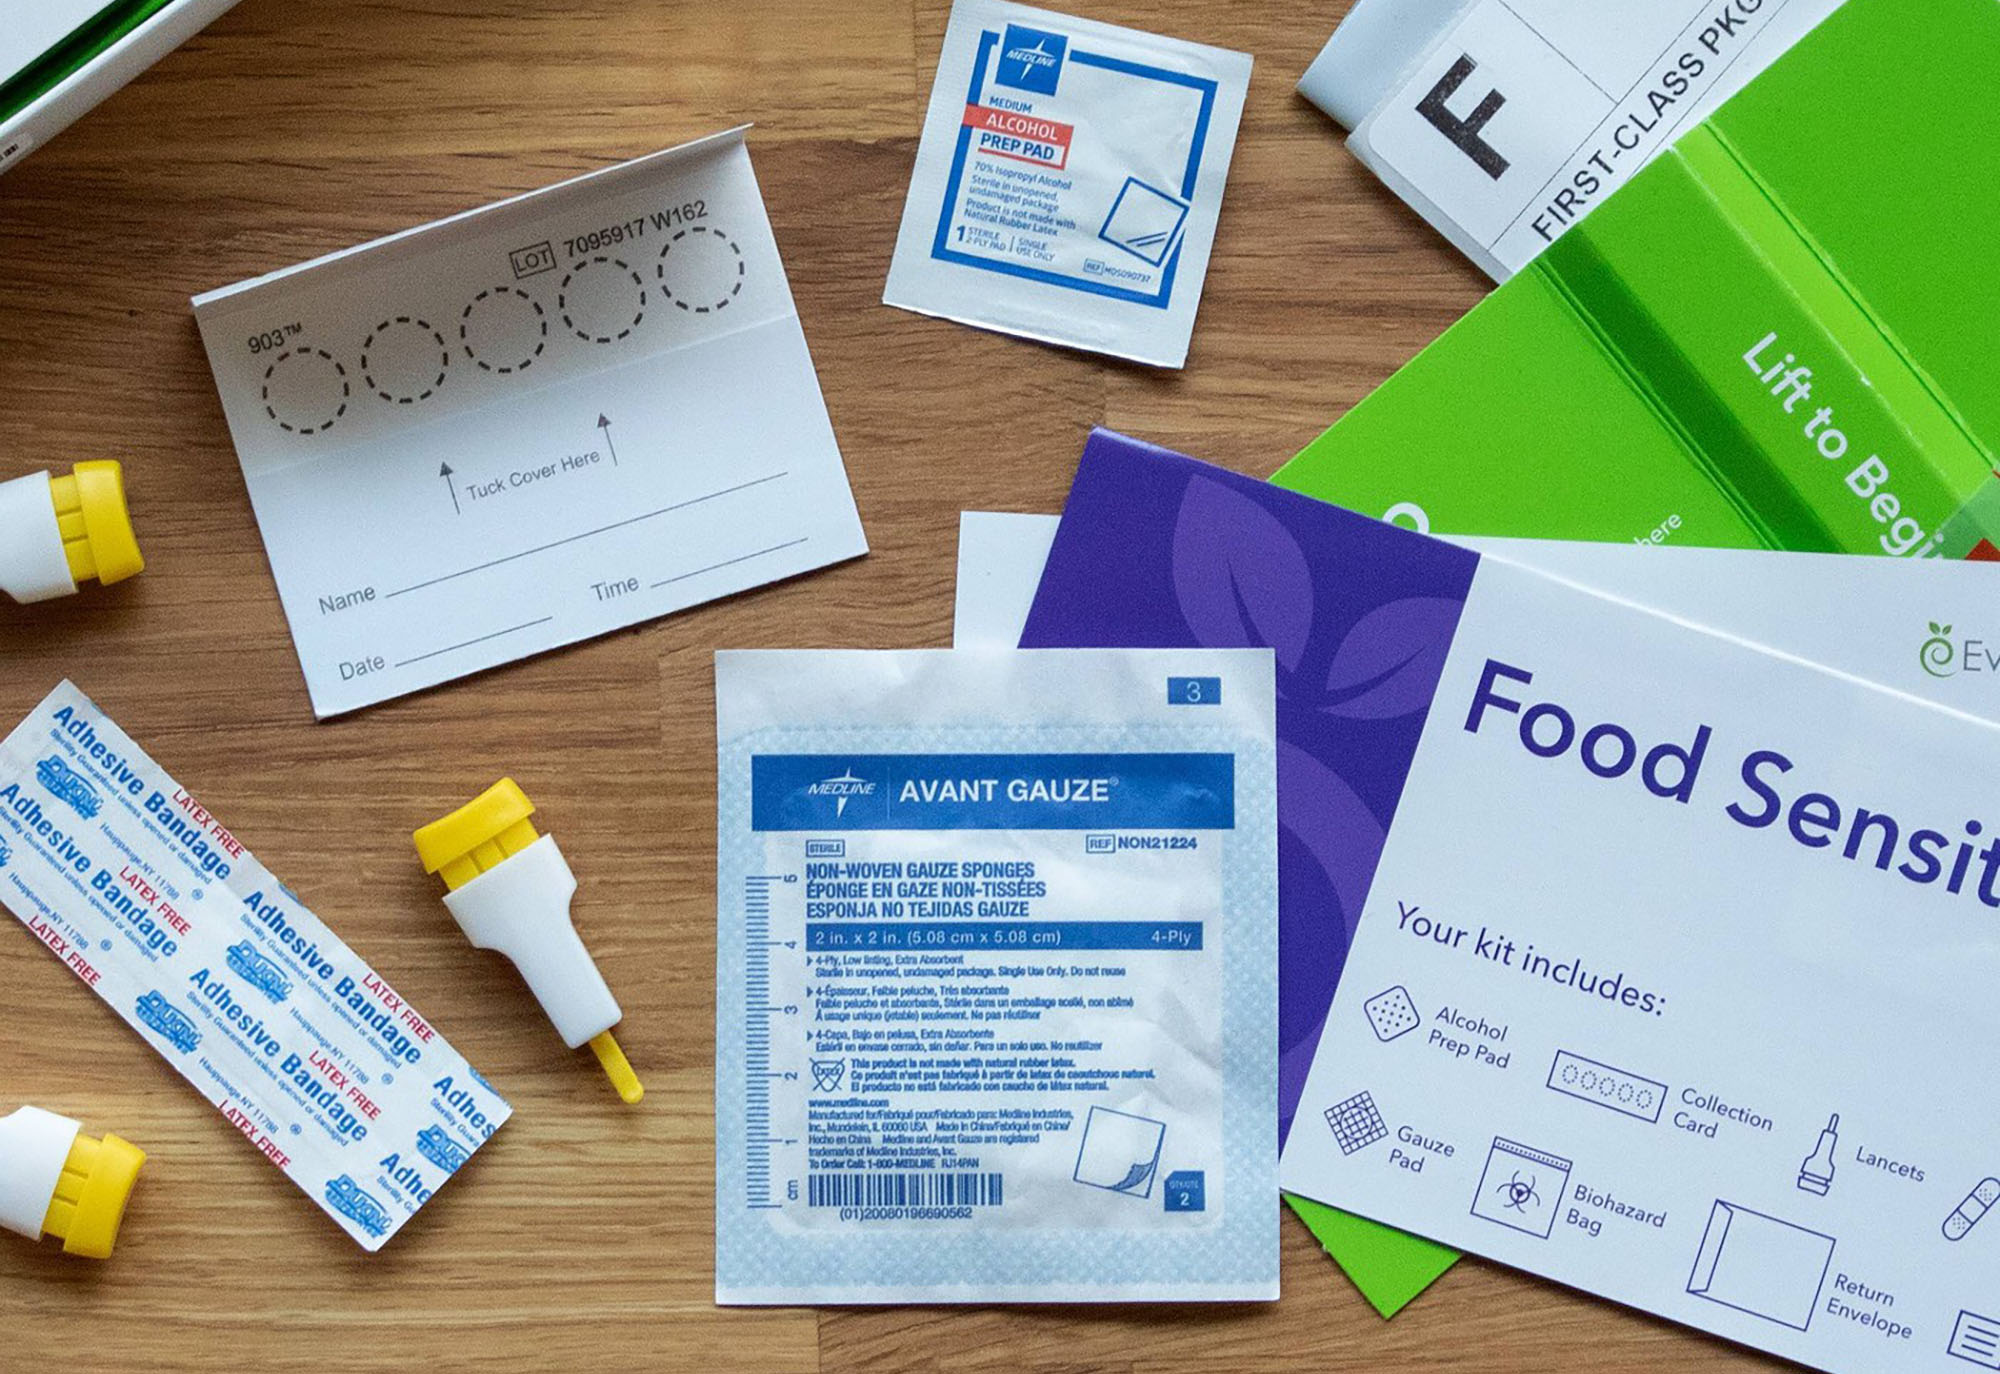 EveryWell's Easy-to-Use Food Sensitivity Test Helps Identify Foods You Should Avoid—And We Tried It